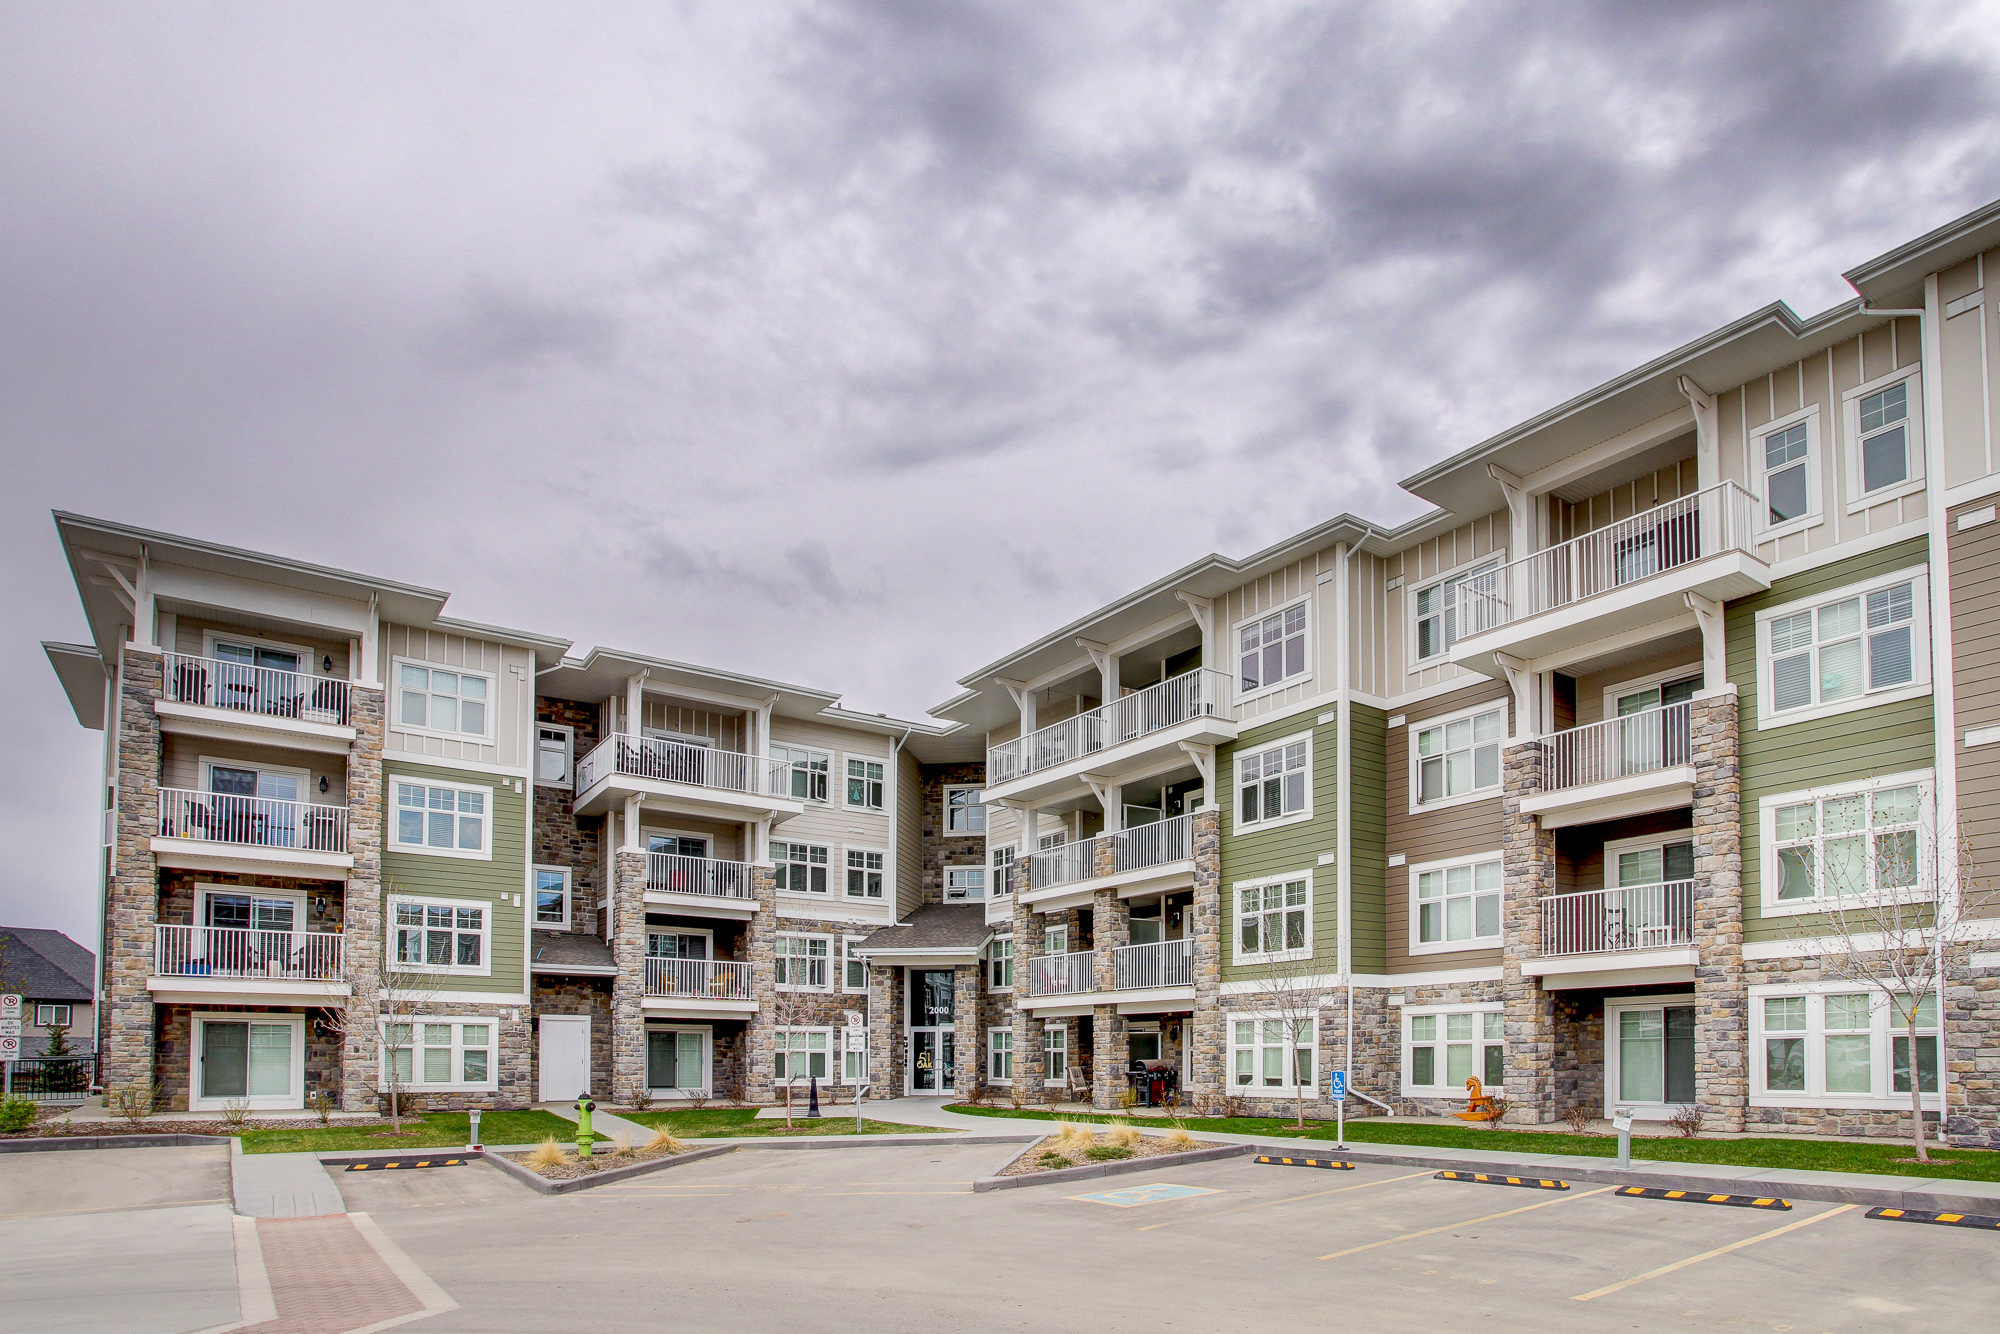 #2410, 11 Mahogany Row SE in Calgary, AB